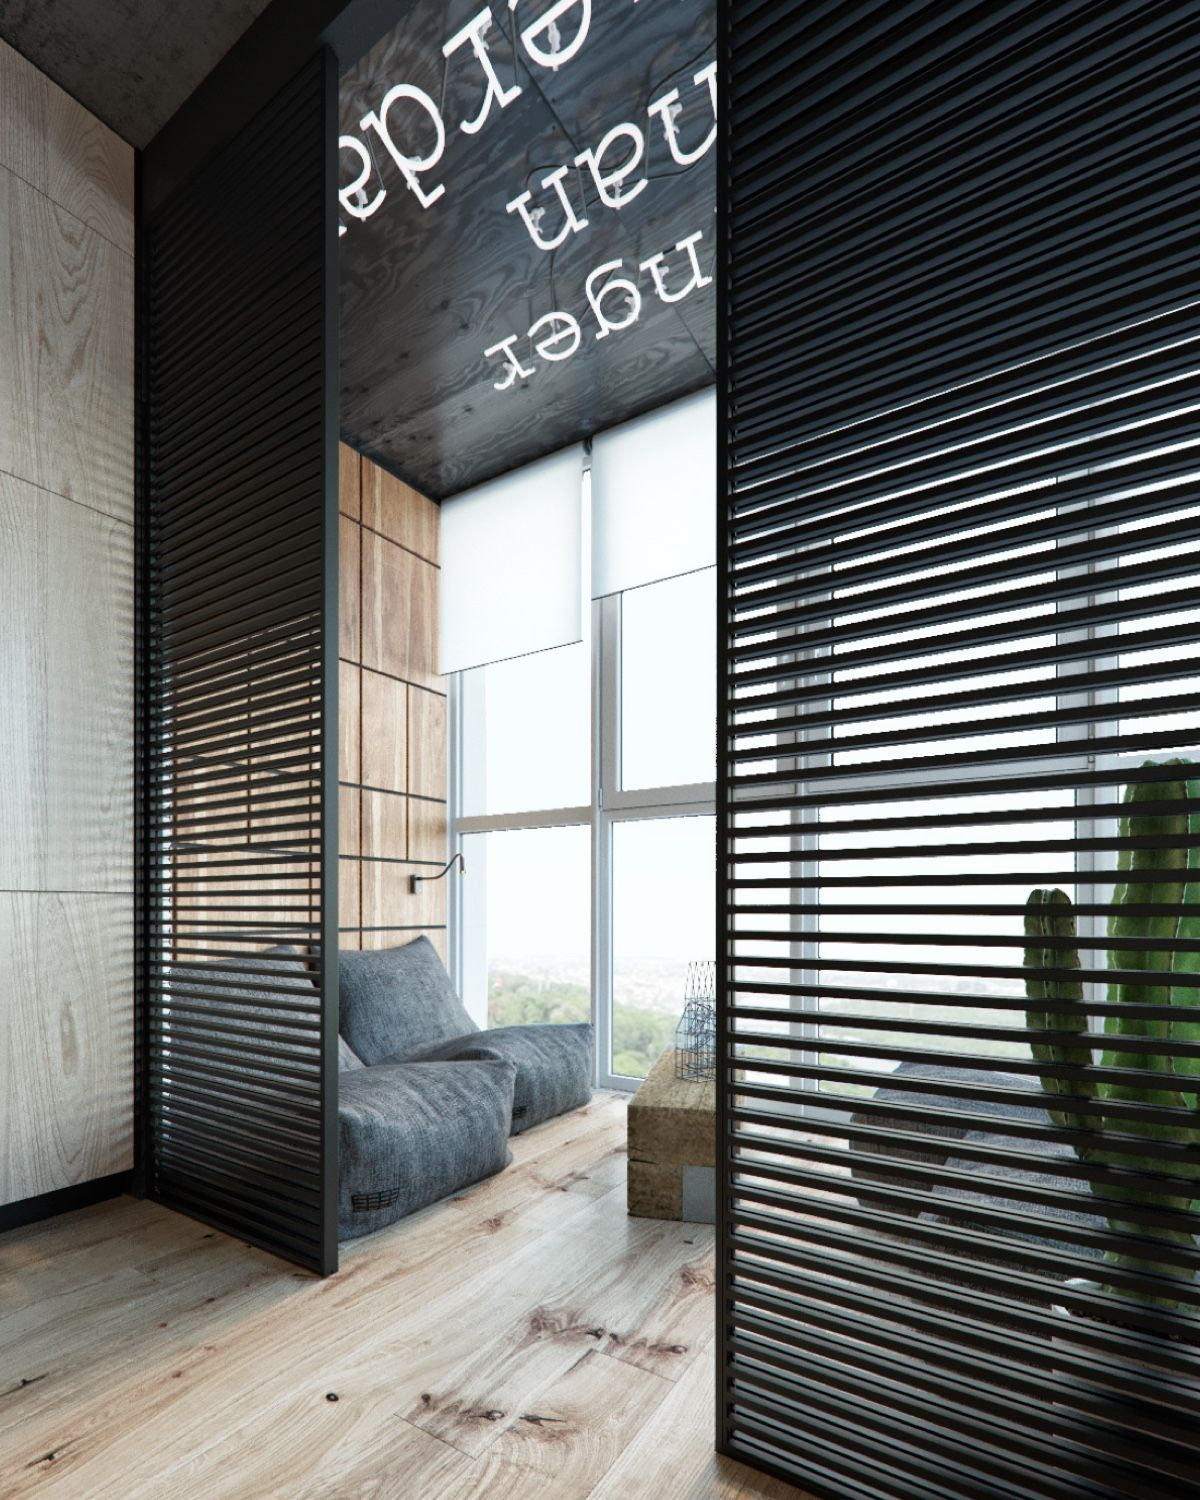 Bachelor Pad Black Slat Grating Wooden Floors Grey Beanbag Couches - Find greyspiration in 3 sophisticated modern grey spaces